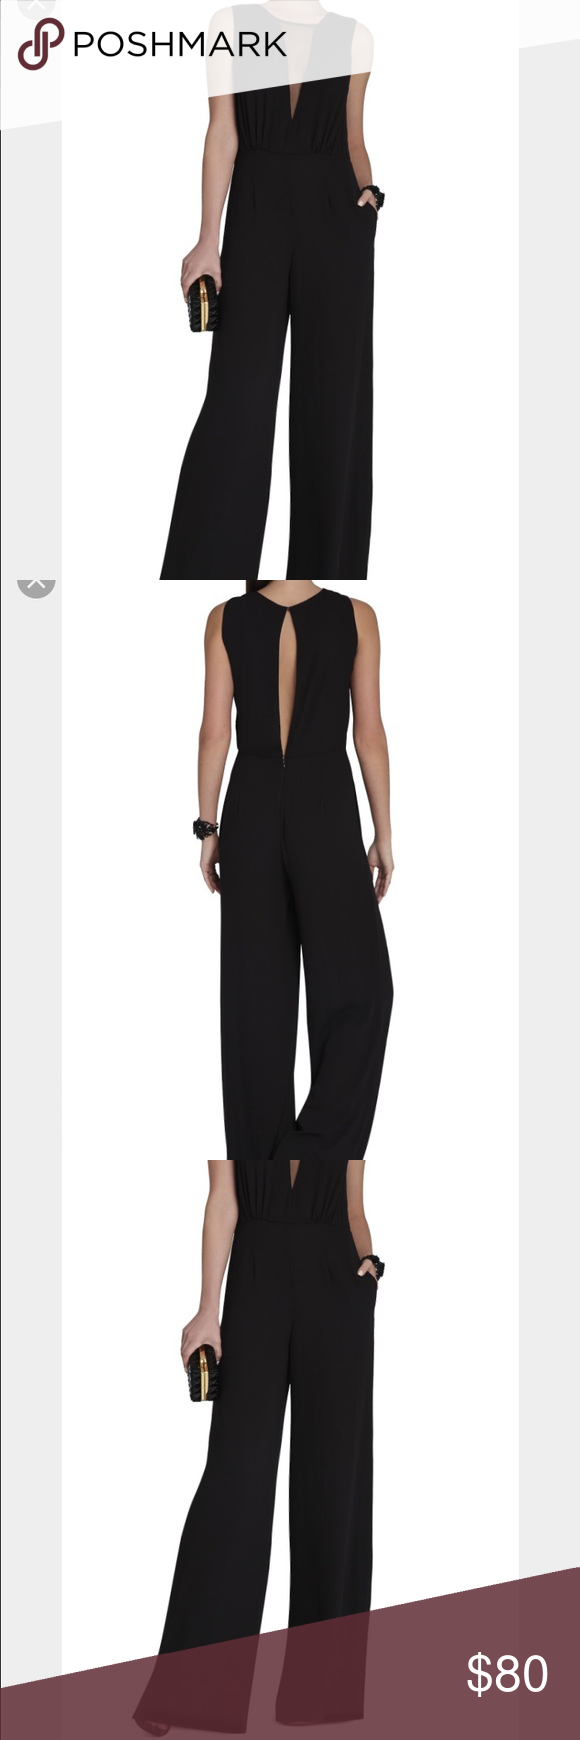 BCBG MaxAzaria black jumpsuit XS Behati sleeveless v neck jumpsuit. Worn only once, loved the sexy and sophisticated look. Excellent condition. Available on BCBG website original $248.00 now on sale for $124.00 BCBGMaxAzria Other